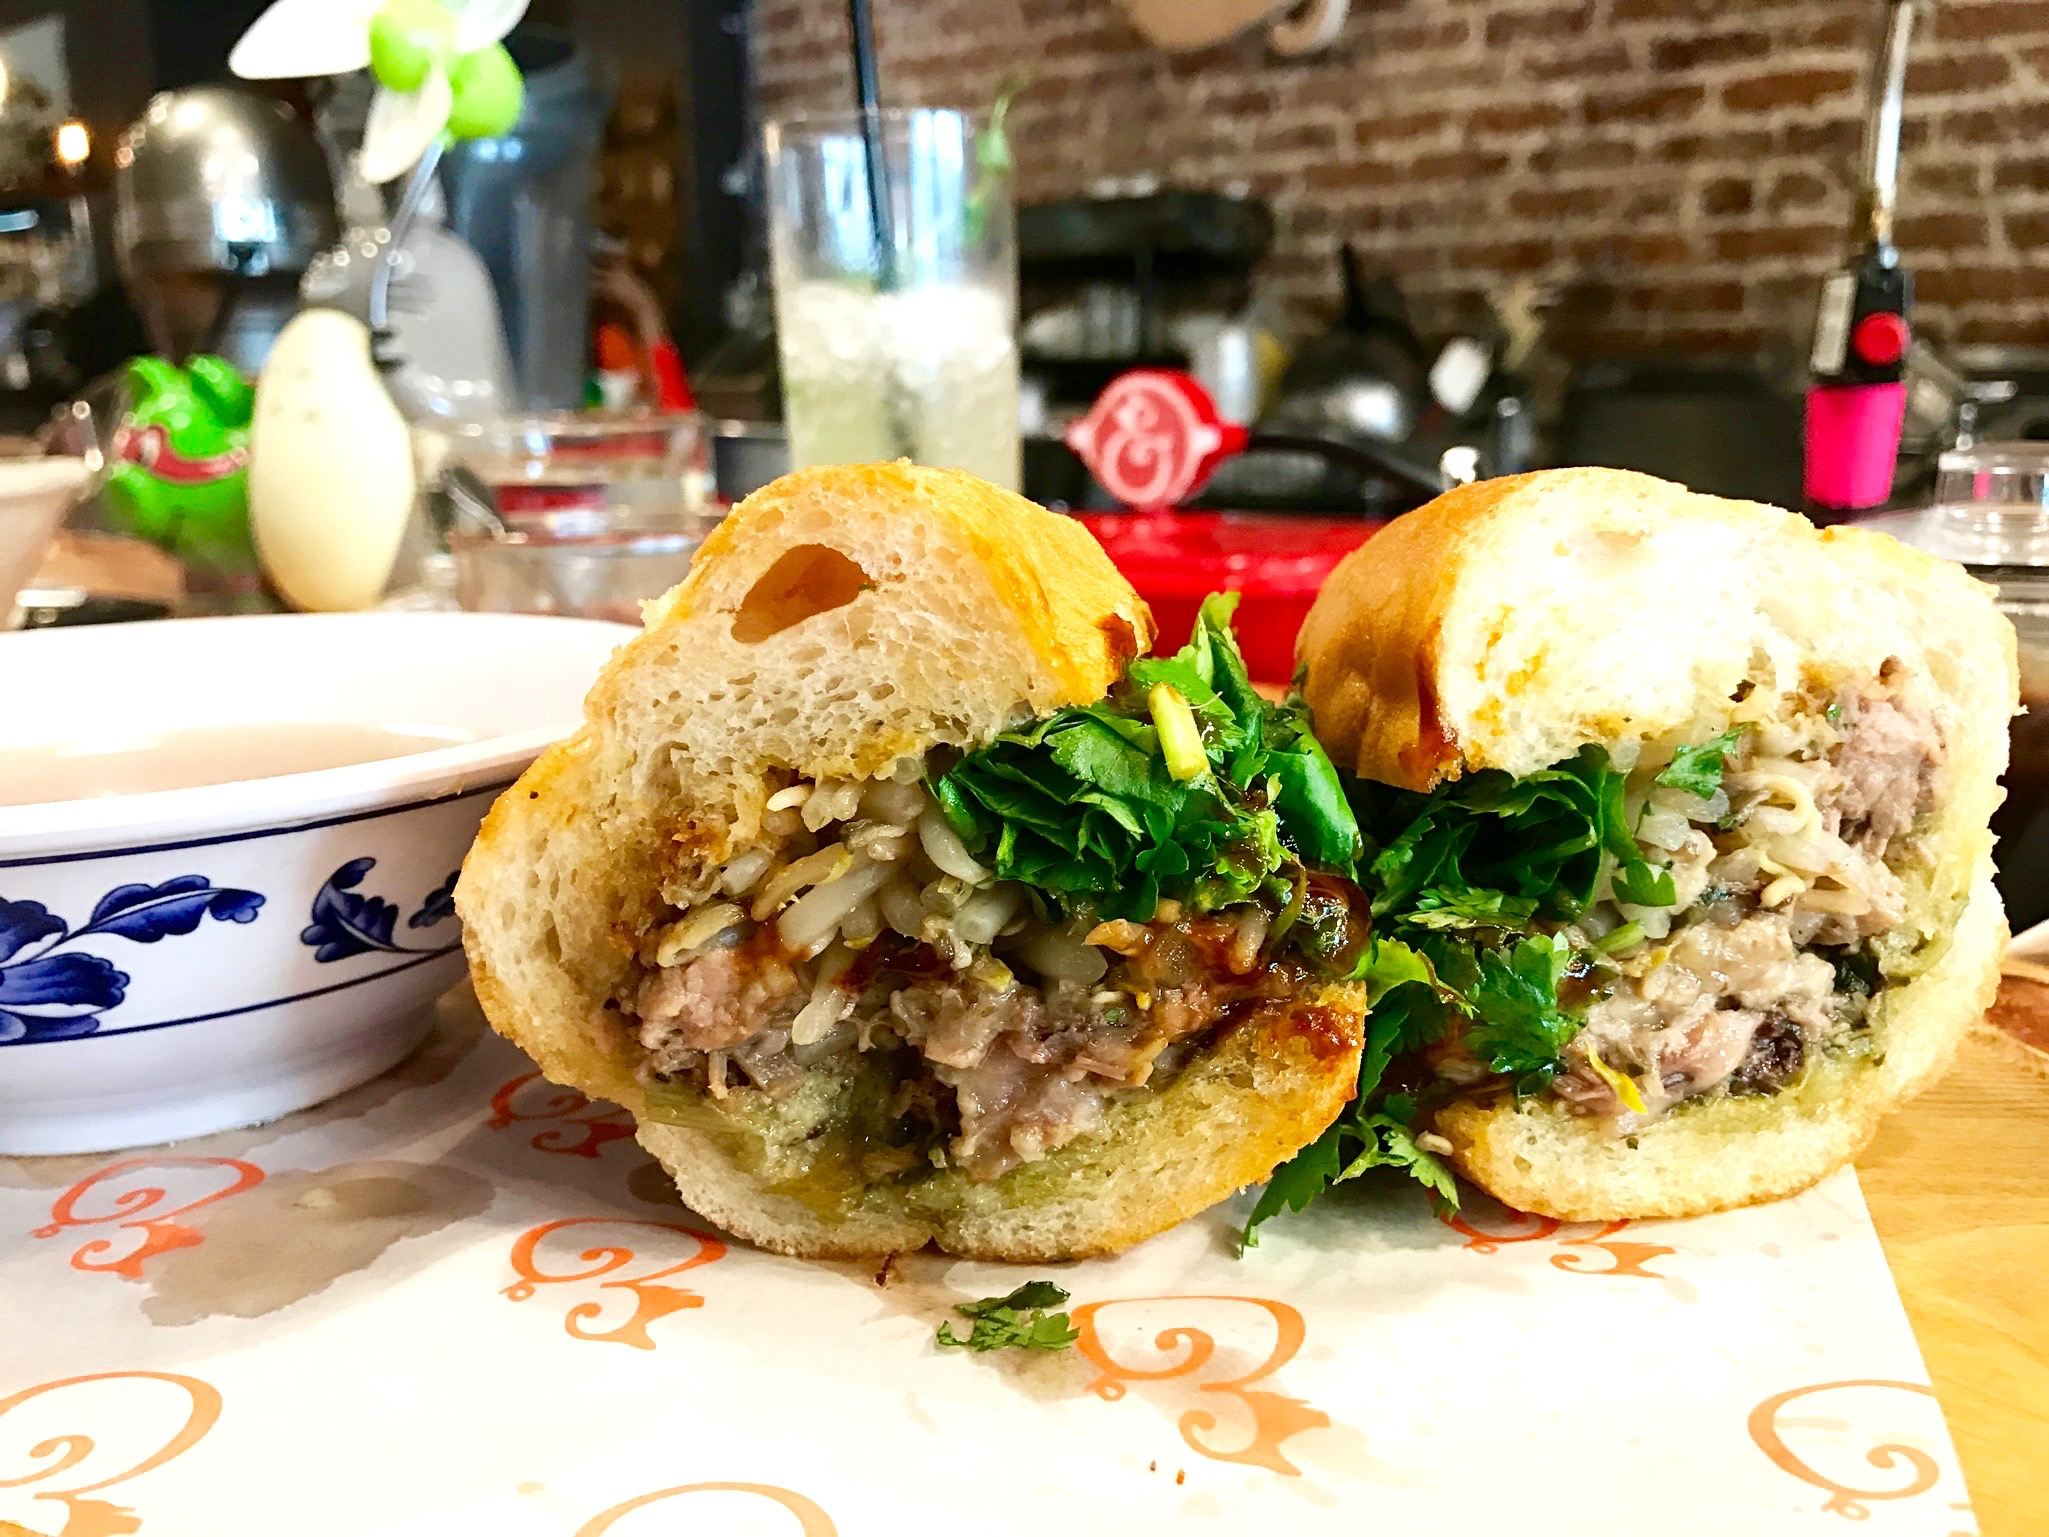 Yaaasss...this is what dreams are made of. Their incredible Beef Pho French Dip.